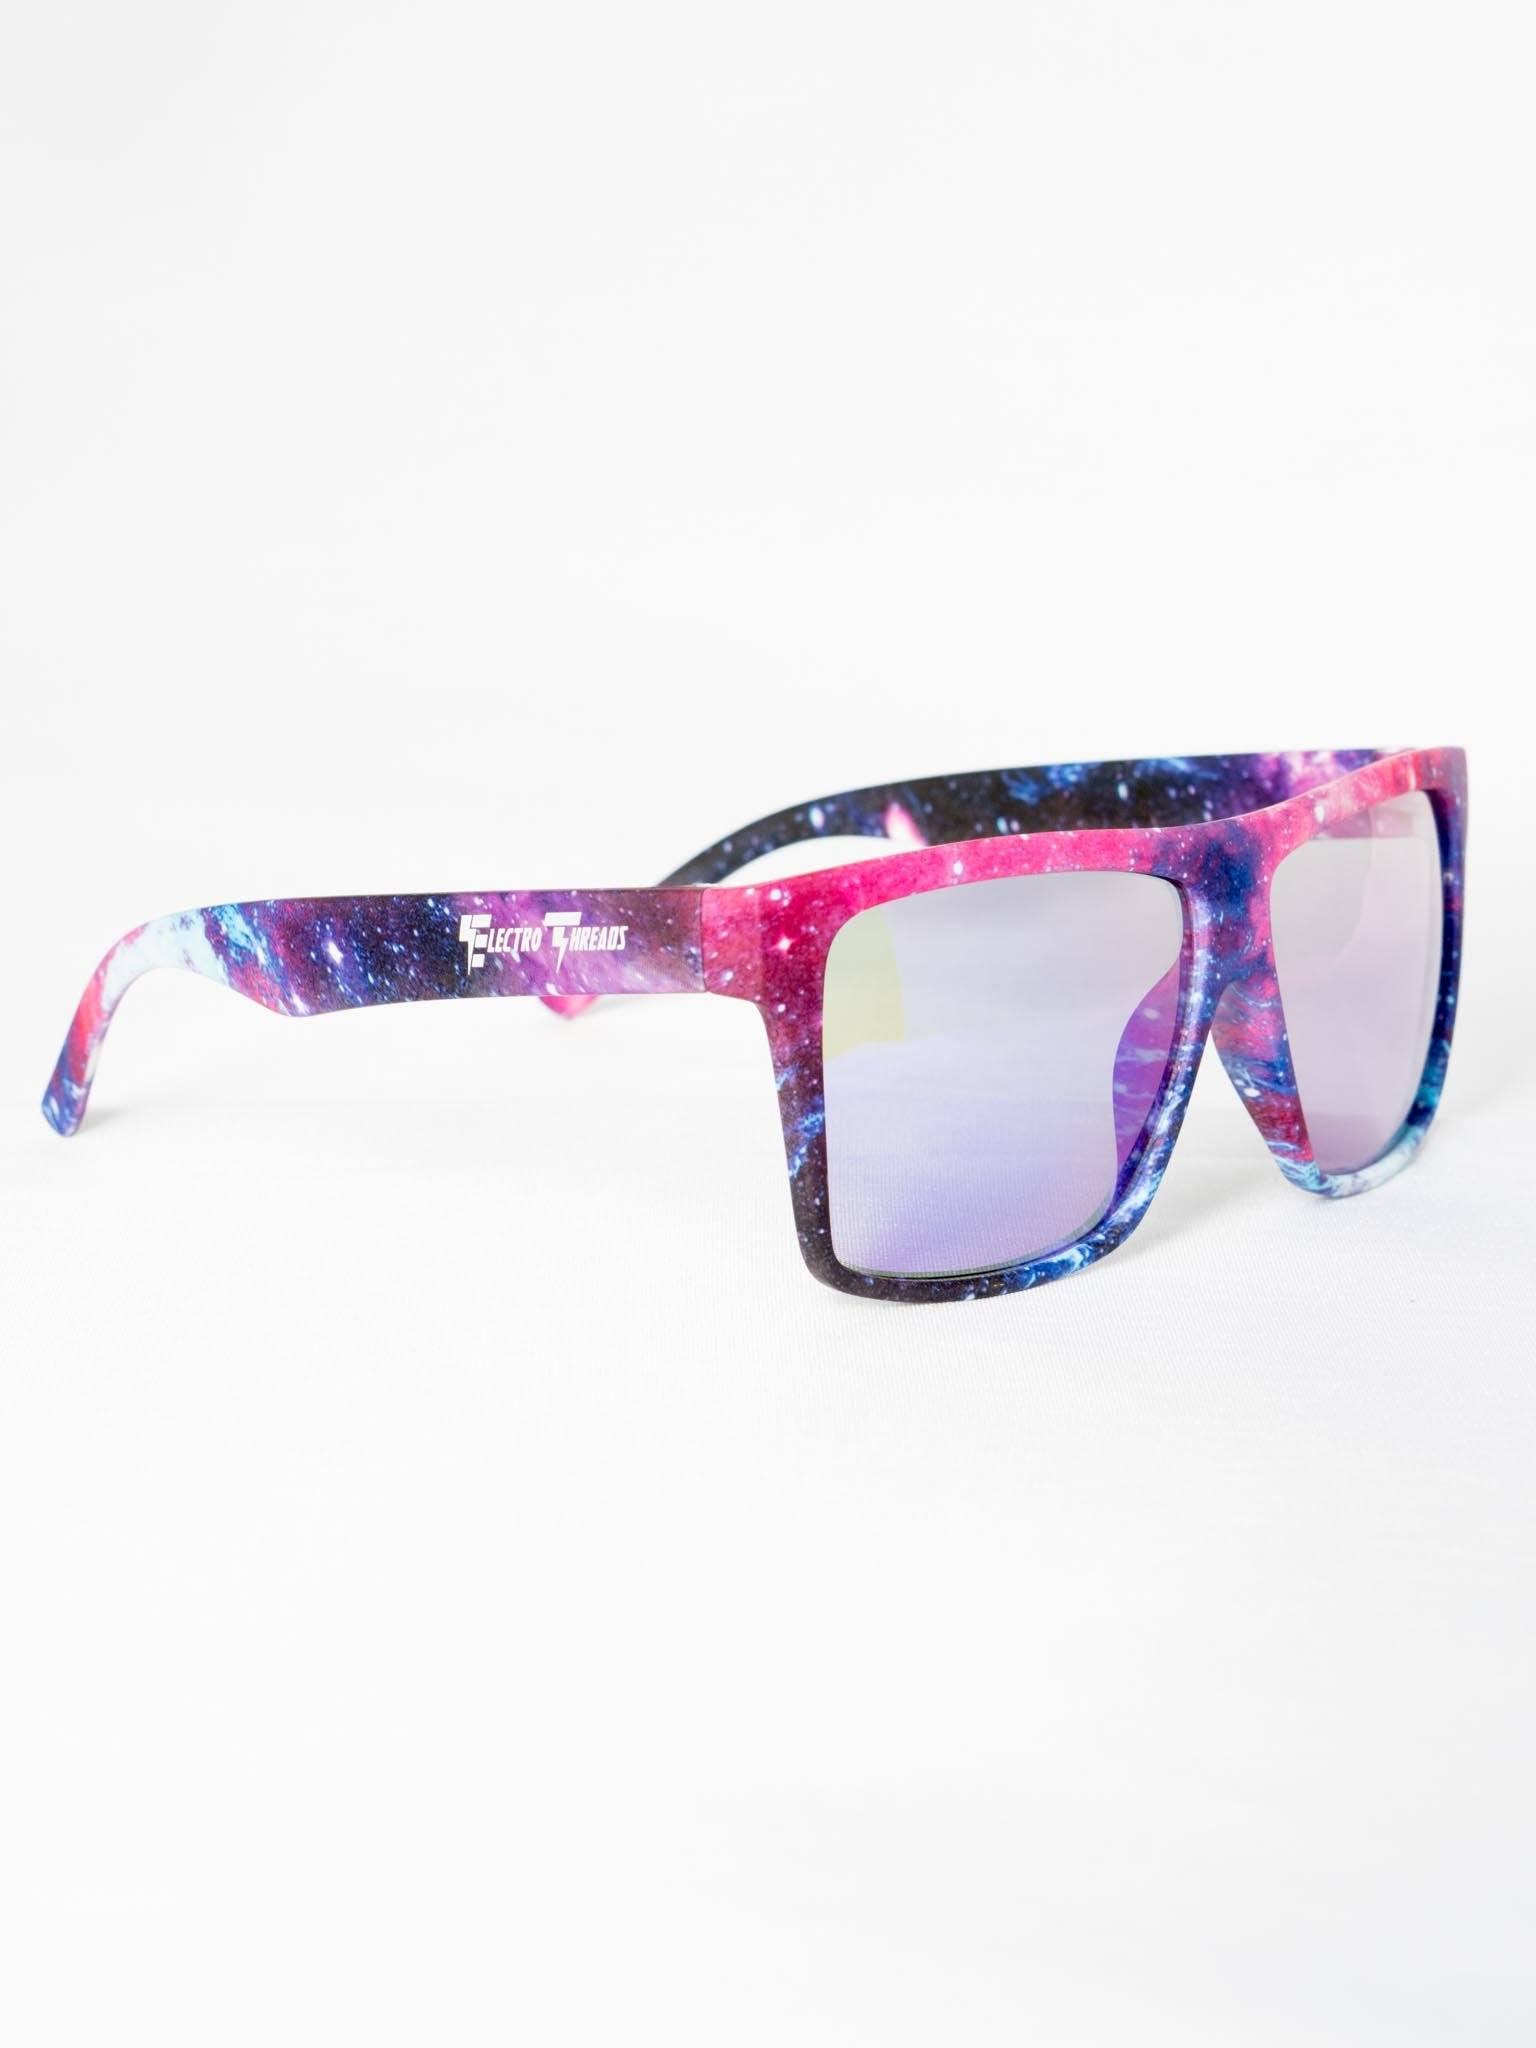 Galaxy Sunglasses Glasses Electro Threads Purple